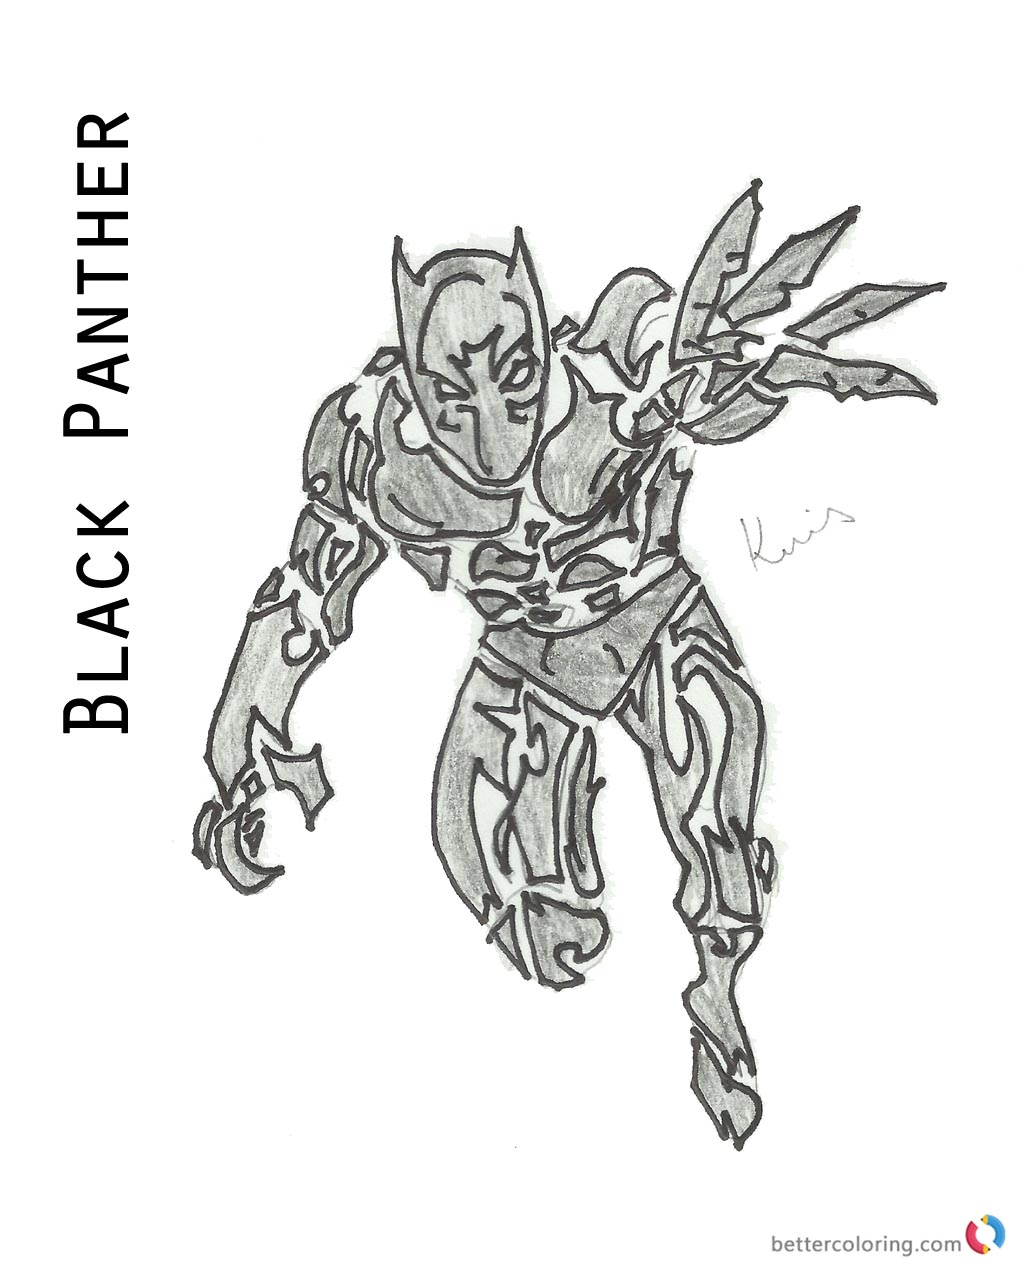 Superhero Thanos Coloring Pages: Marvel Black Panther Coloring Book